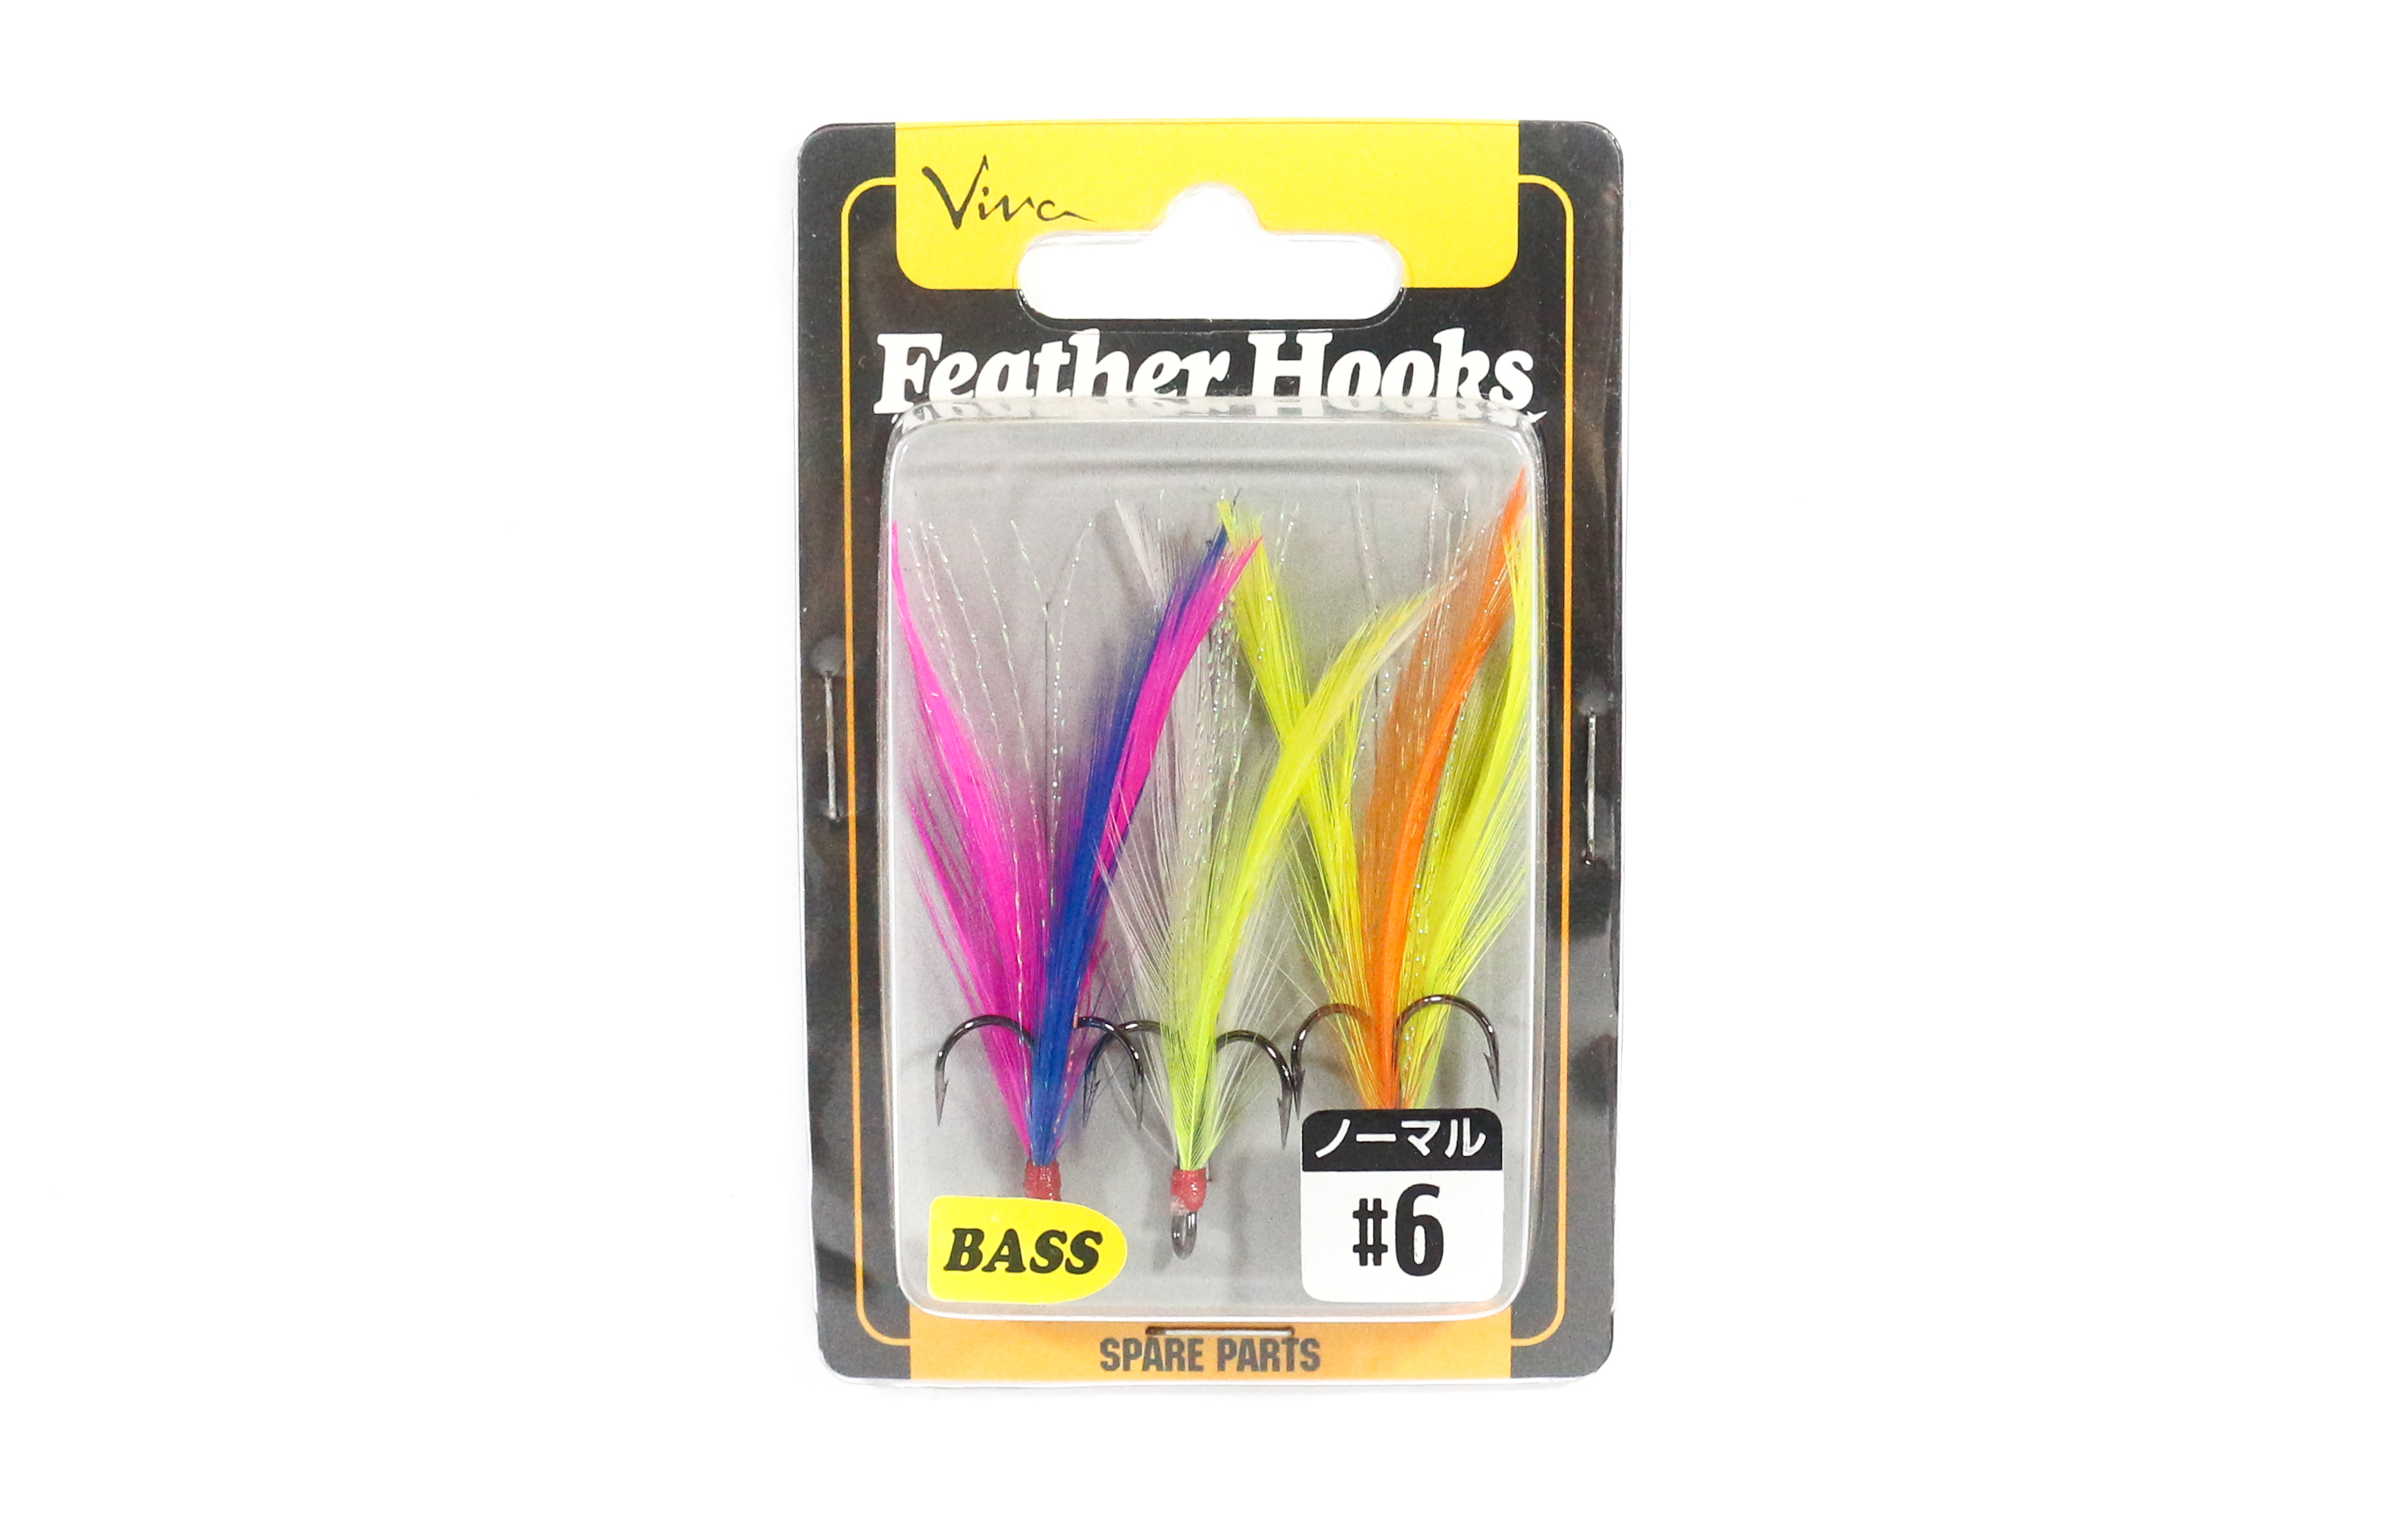 Viva Feather Hook Spare Tail Hooks for Bass Size 6 FH1 (4690)